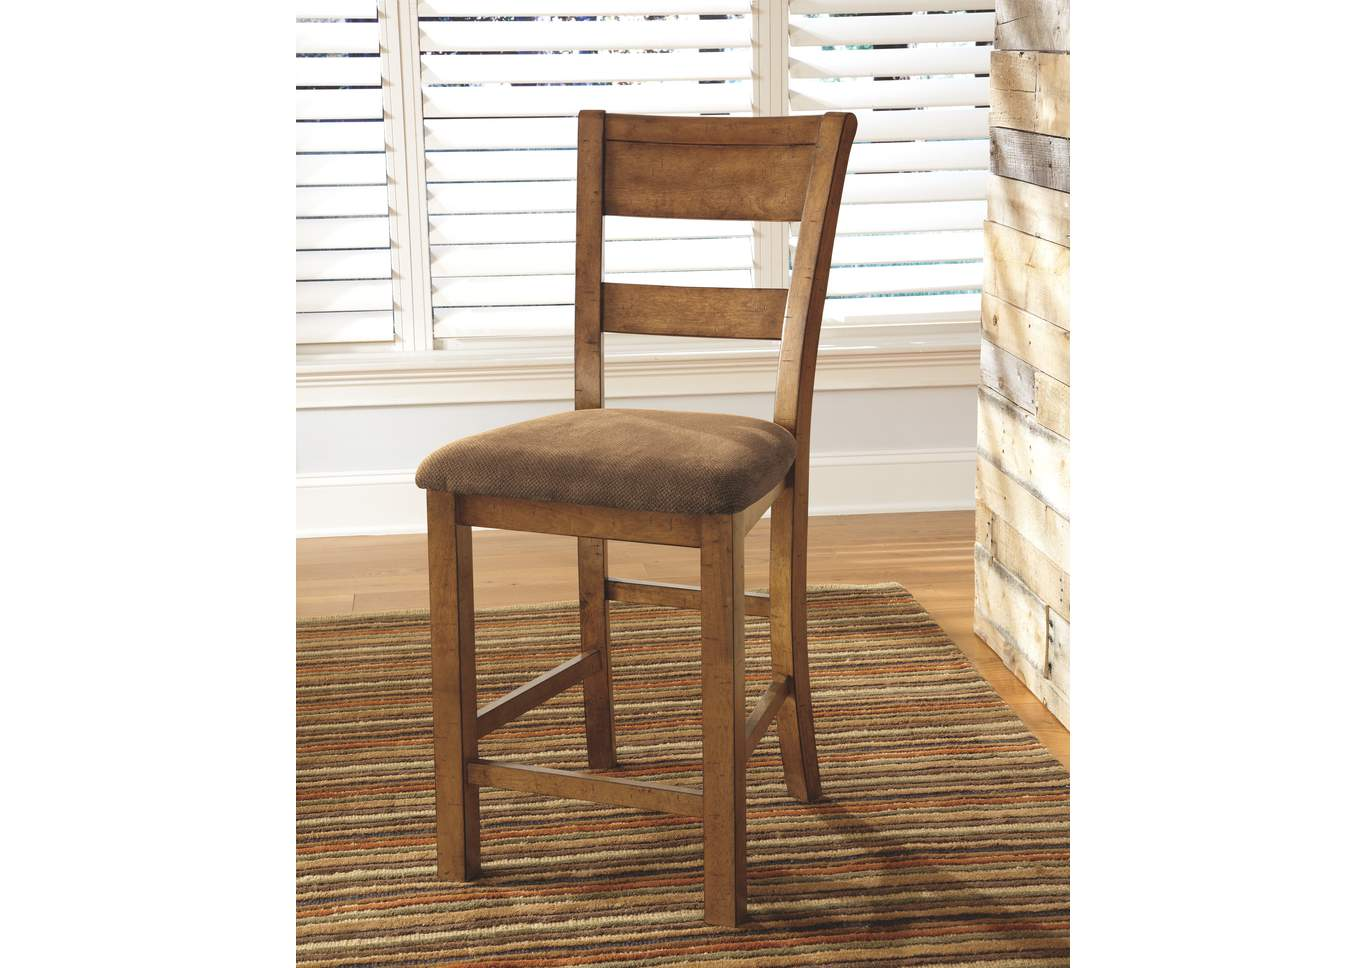 Best Buy Furniture And Mattress The Best For Less Krinden Upholstered Barstool Set Of 2